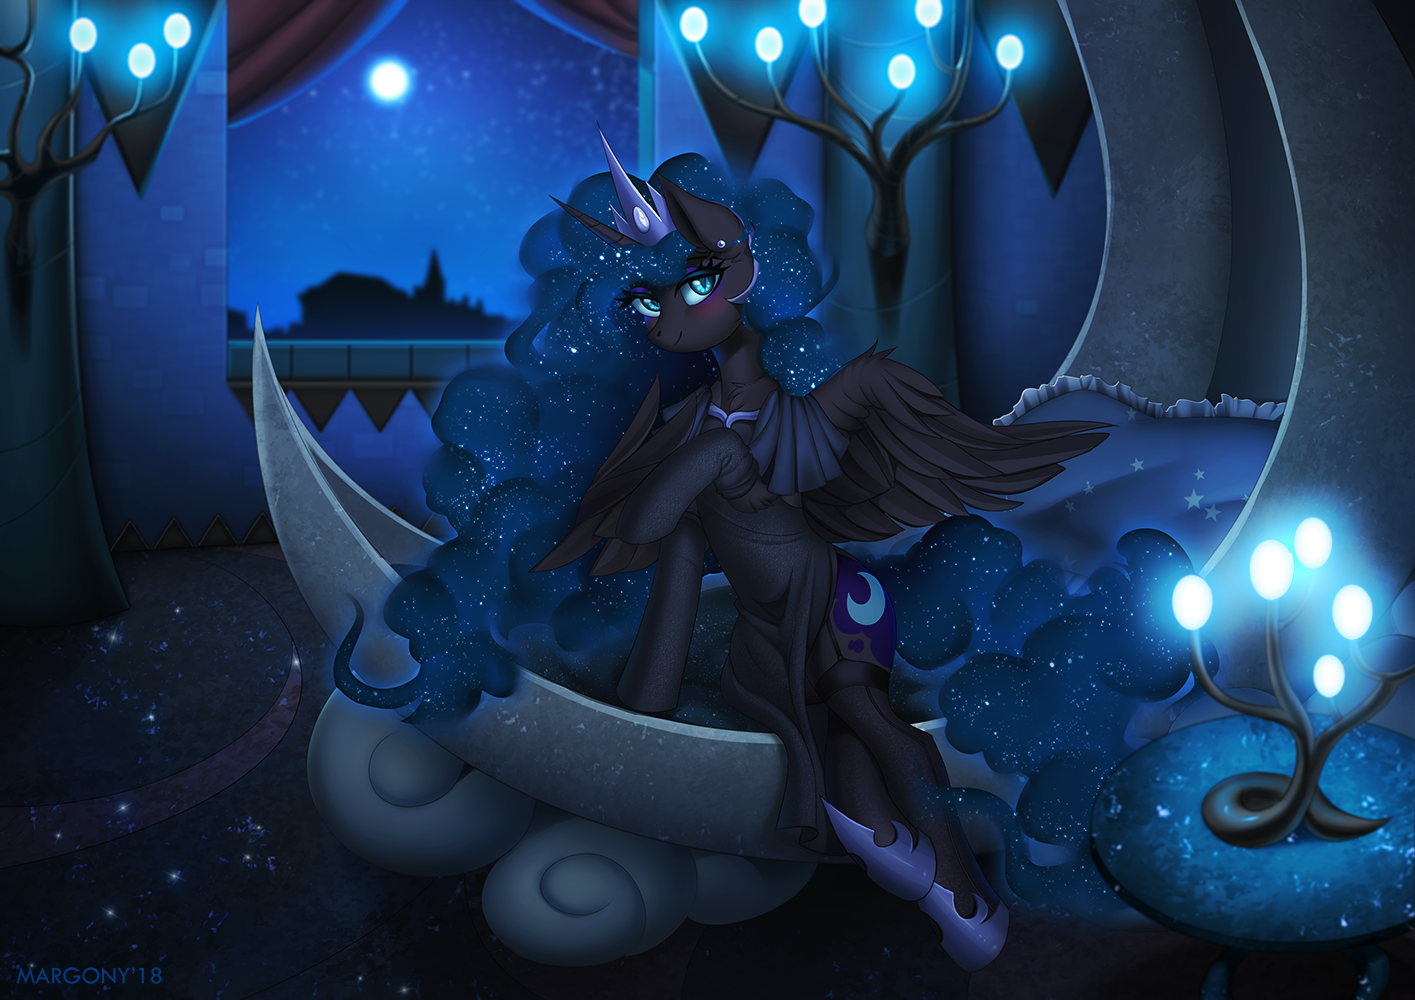 a_night_with_nightmare_moon_by_margony-d